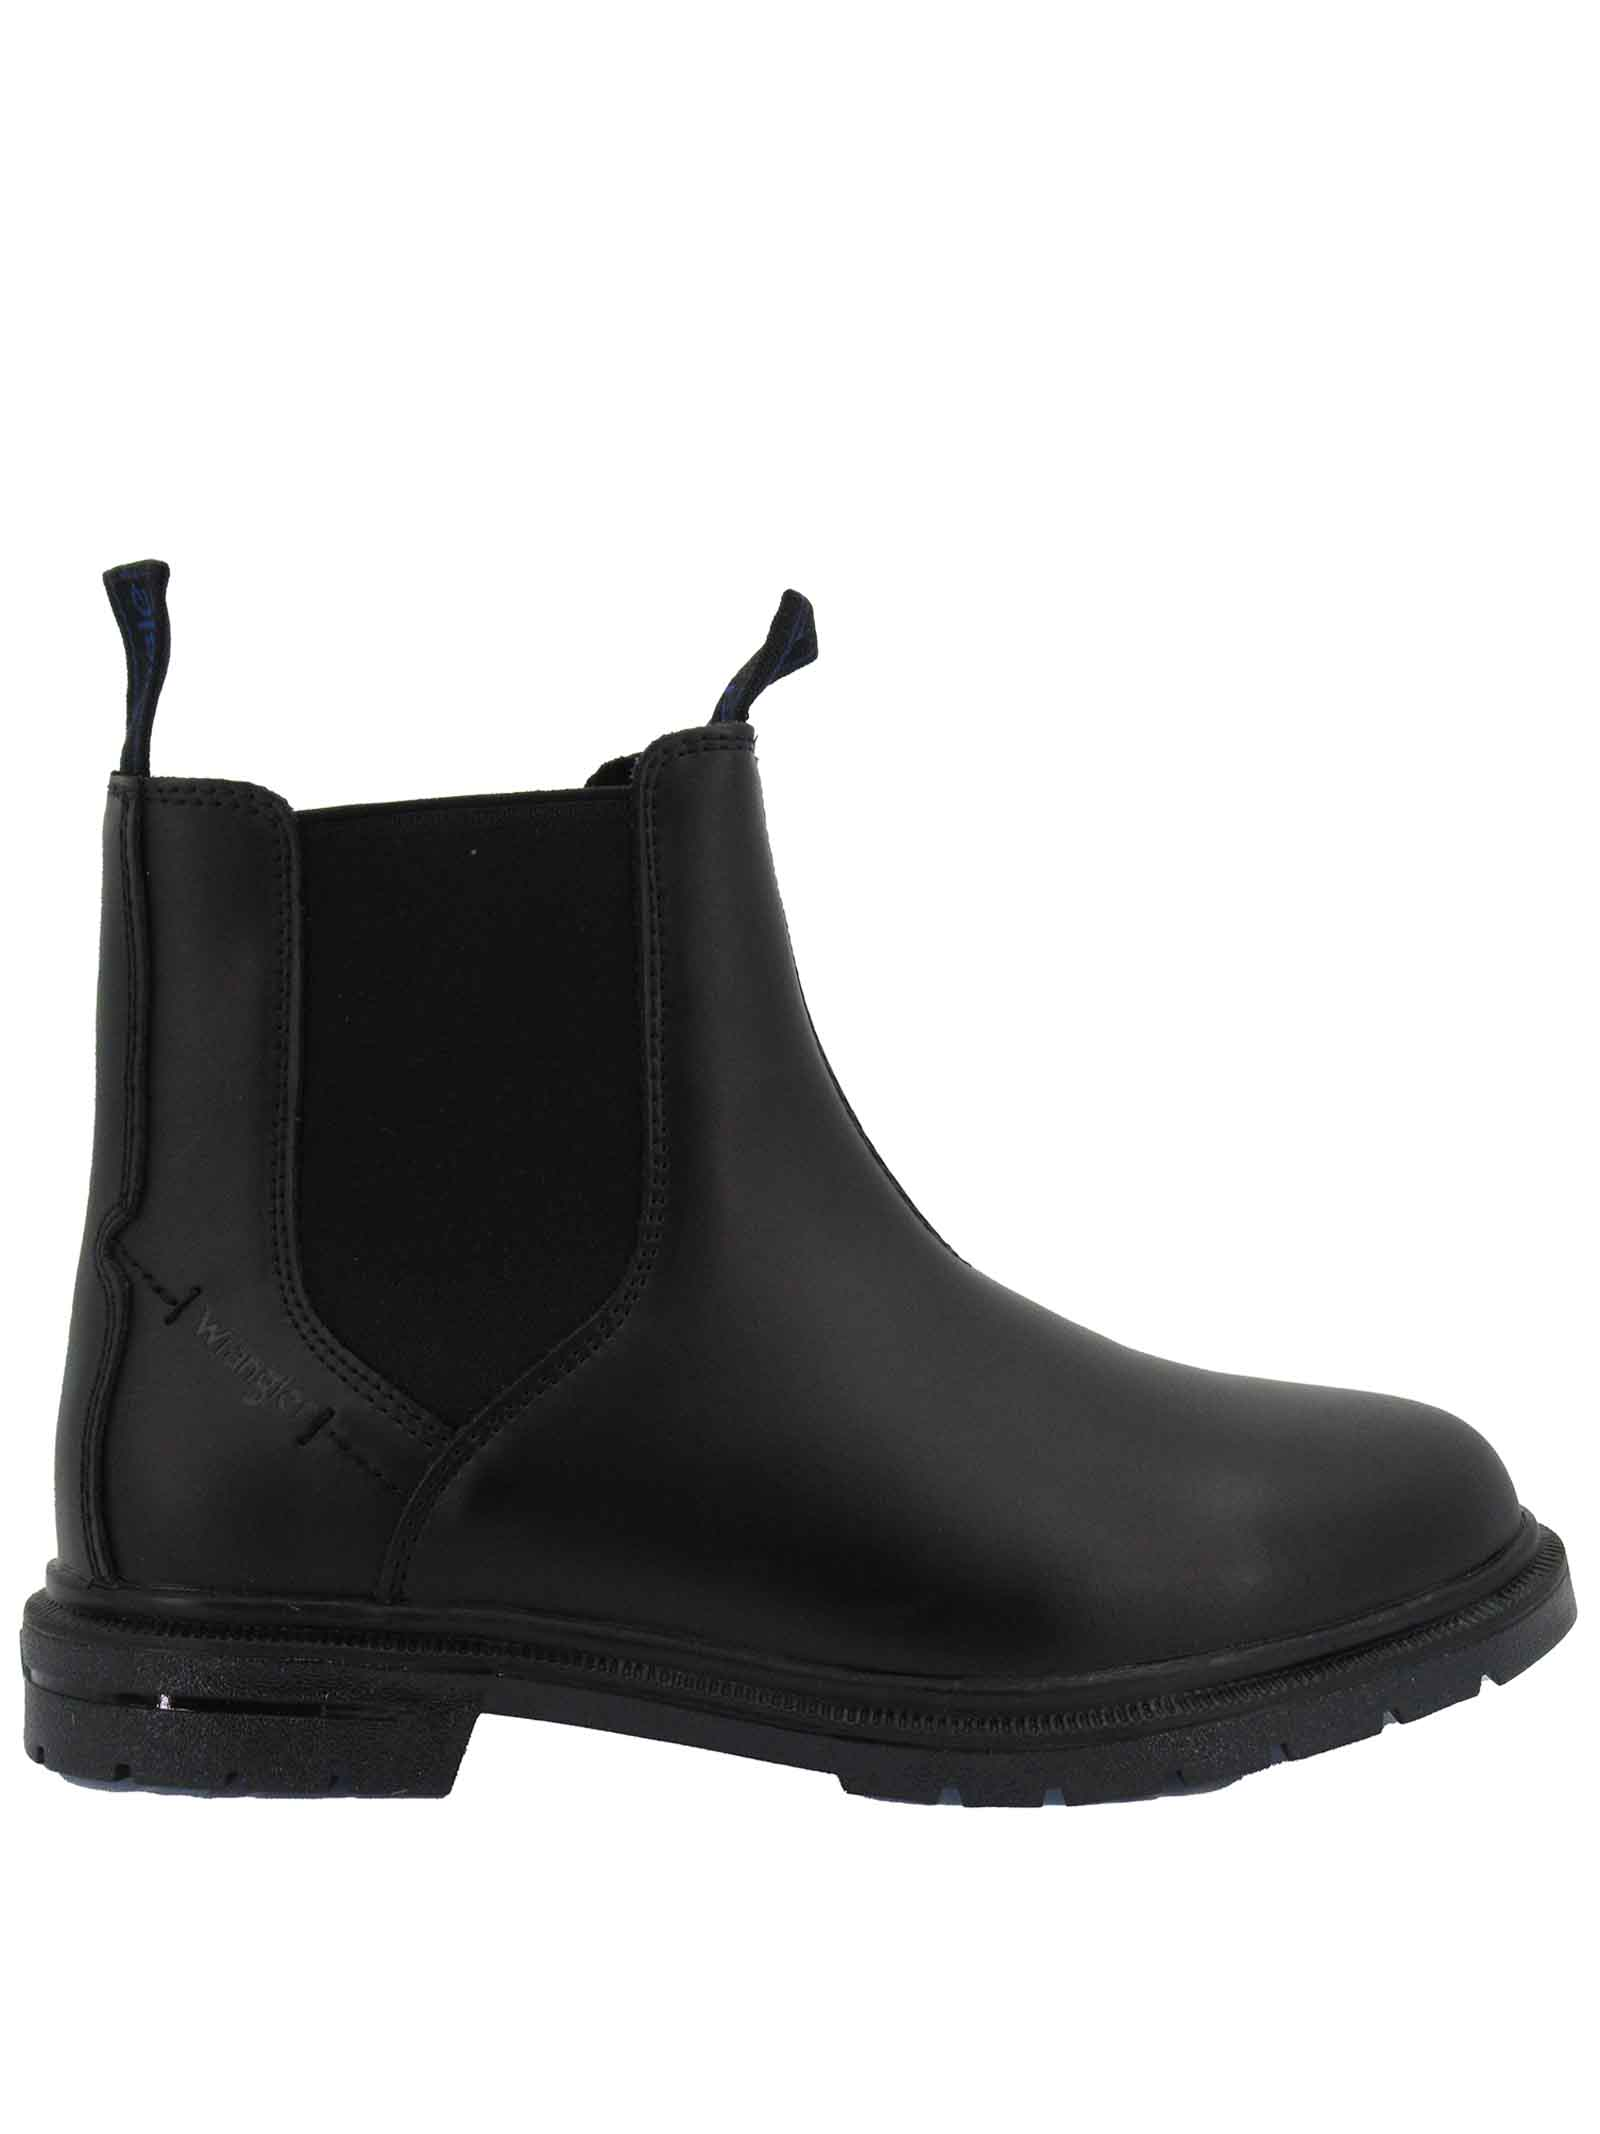 Men's Shoes Ankle Boots Beatles Spike Chelsea in Matt Black Leather with Rubber Sole Tank Wrangler | Ankle Boots | WM12041A062